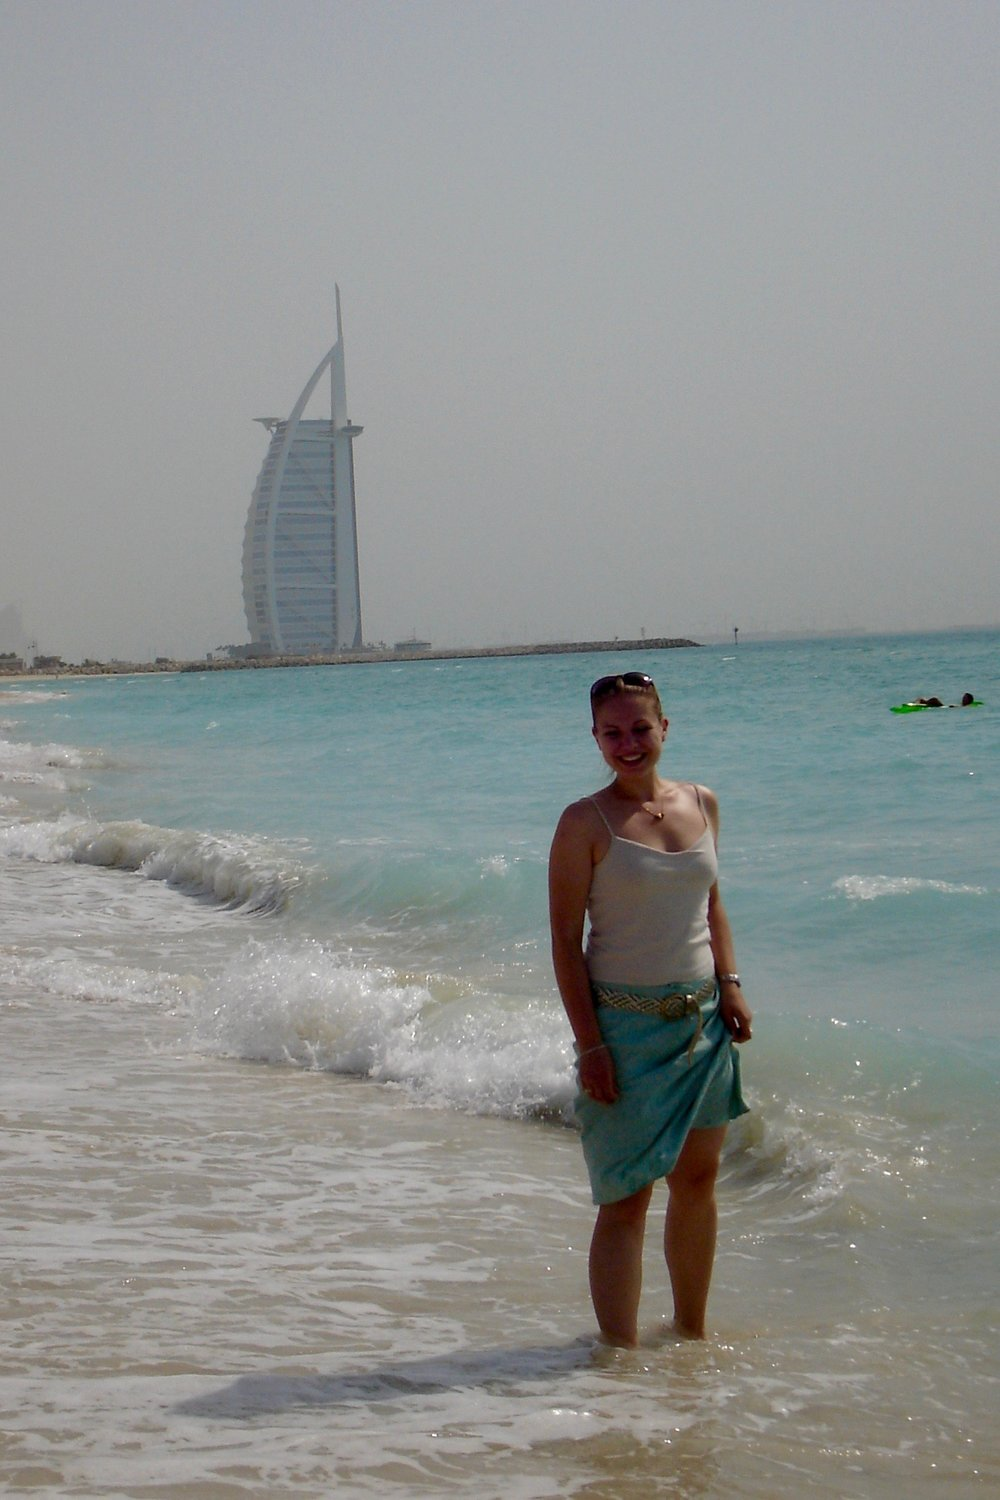 Jumeirah Beach and the Burj al Arab